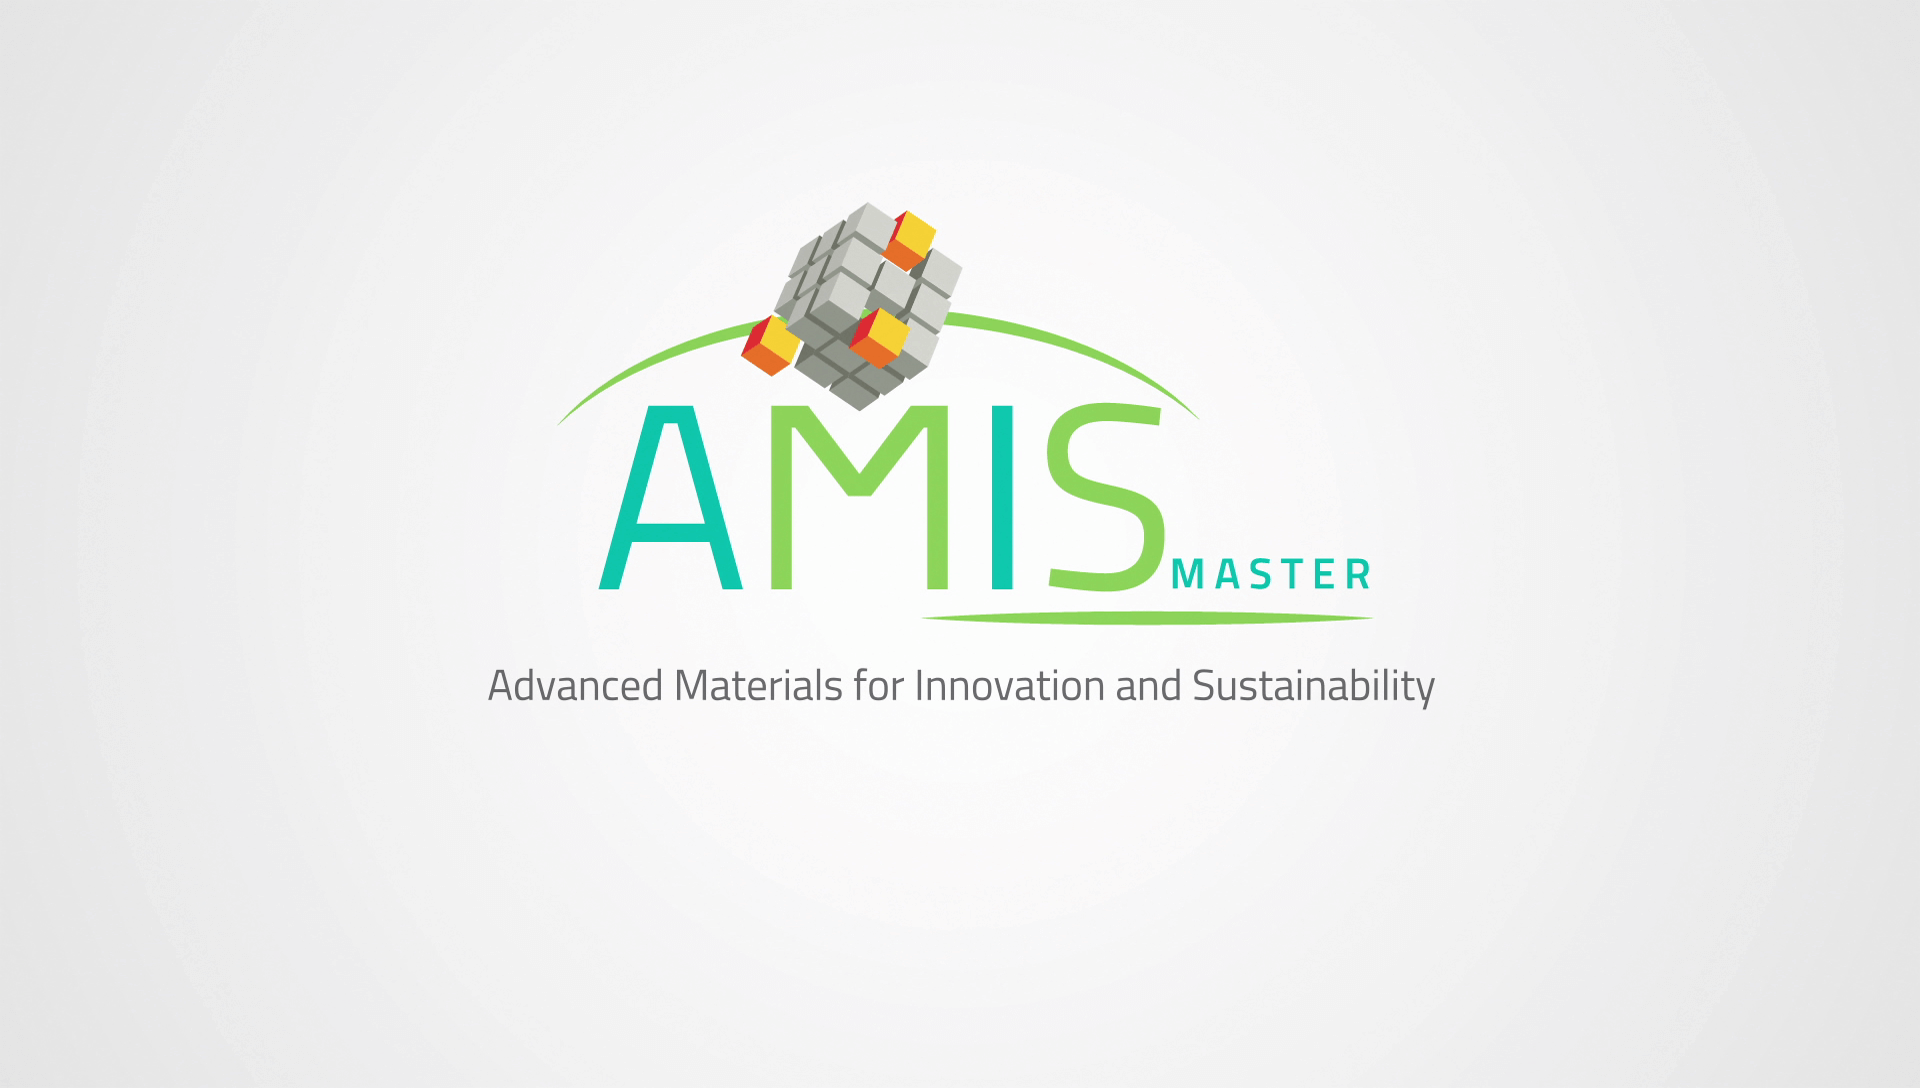 AMIS - Motion design